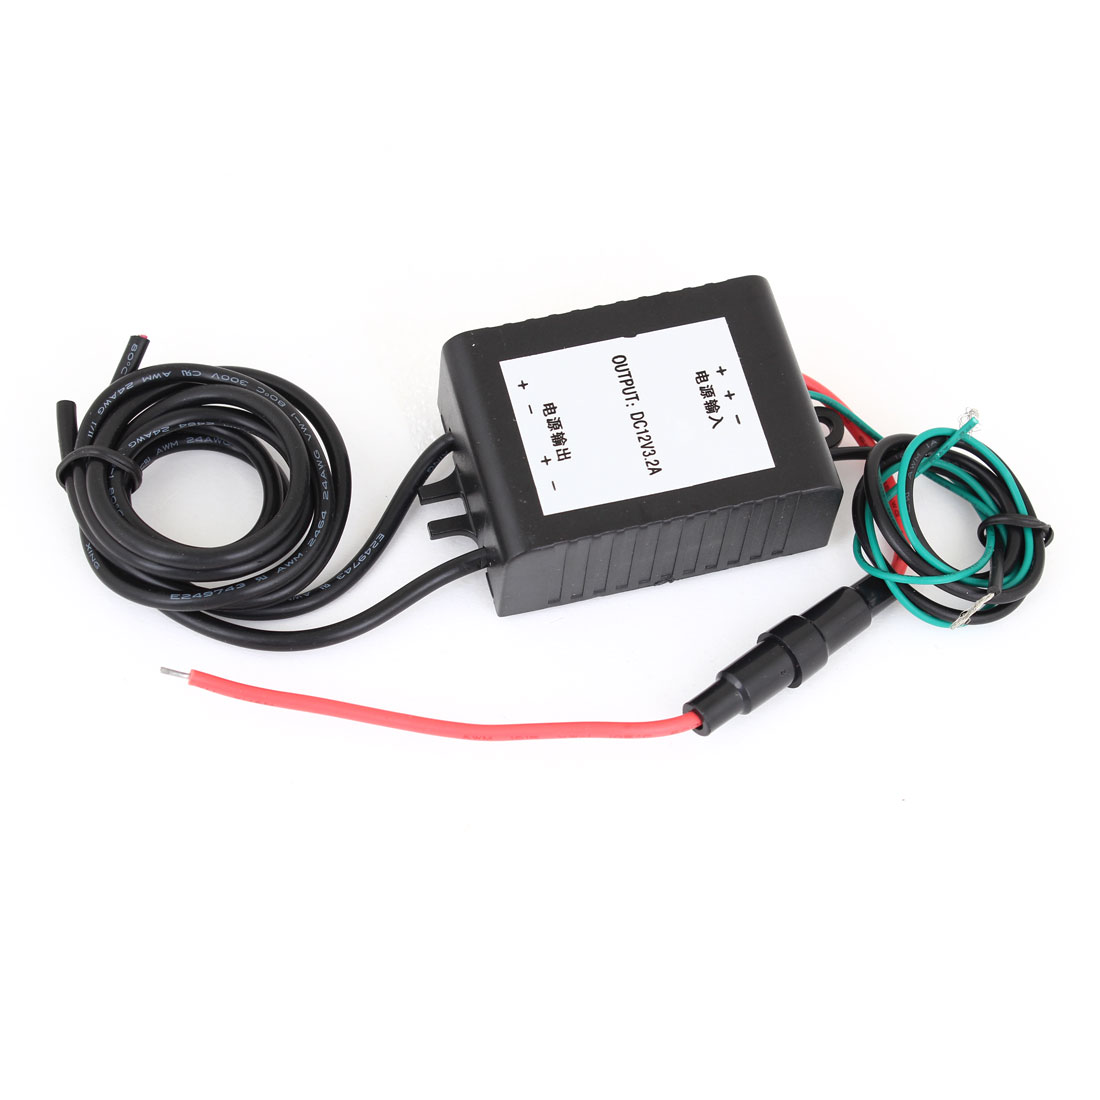 Flash Controller Strob Flasher Module for LED Brake Stop Tail Light 12V 3.2A